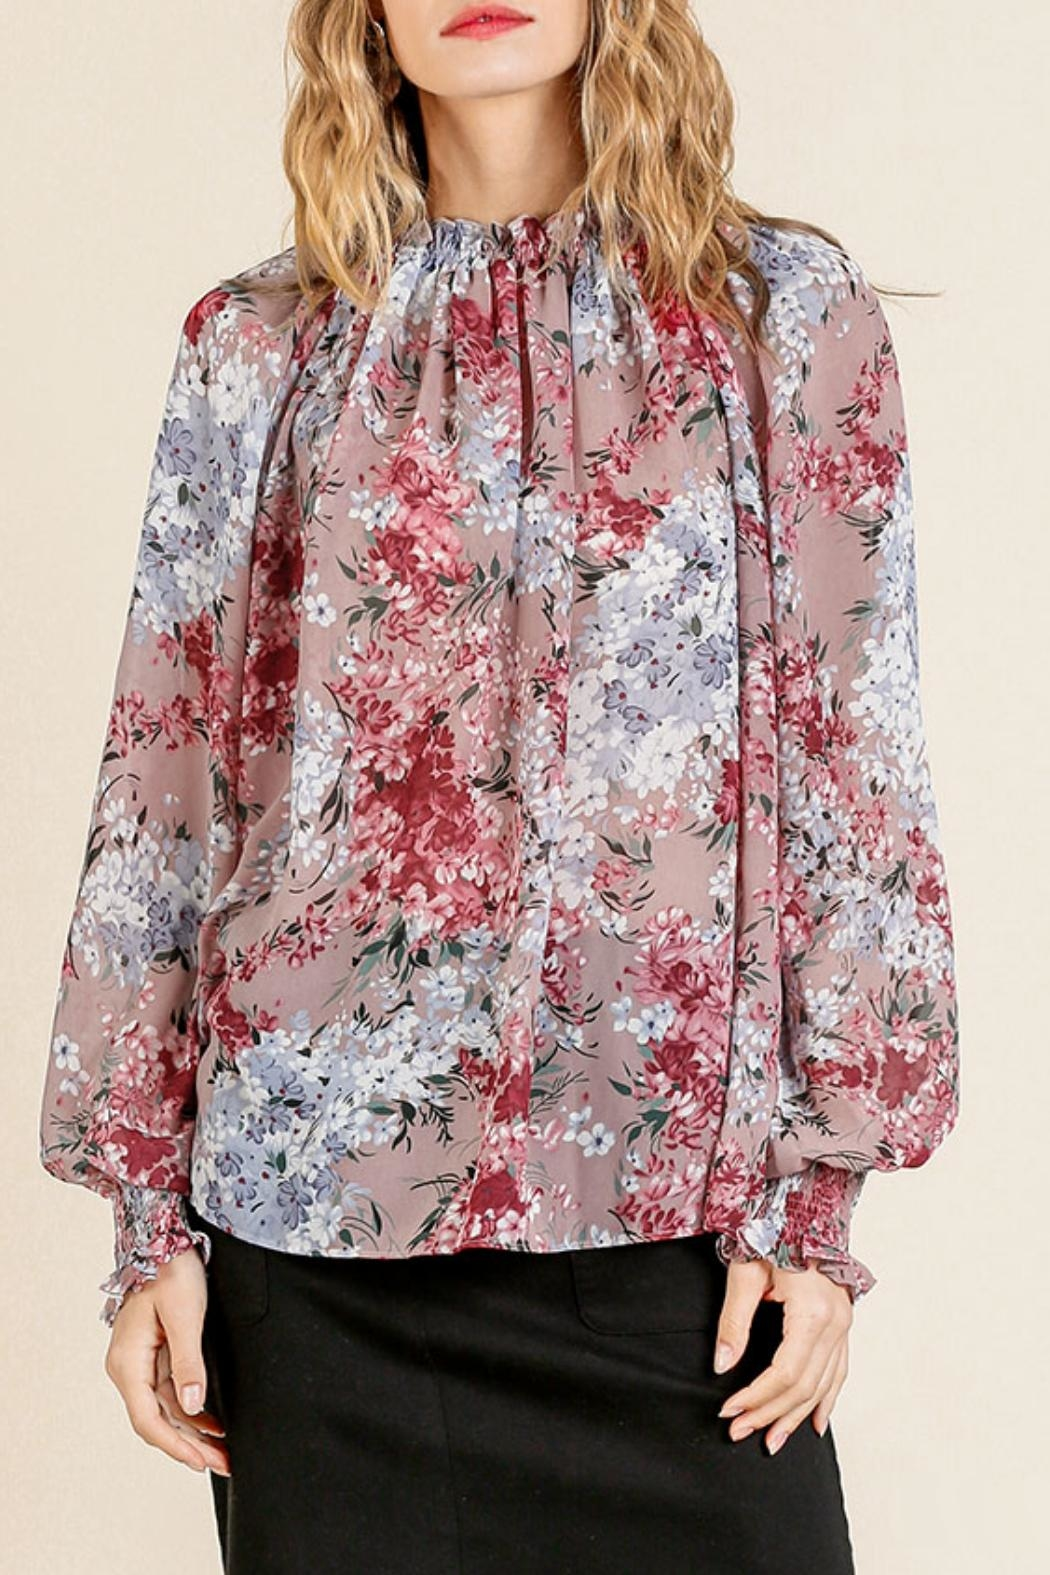 Umgee USA Sheer Floral Top - Front Full Image